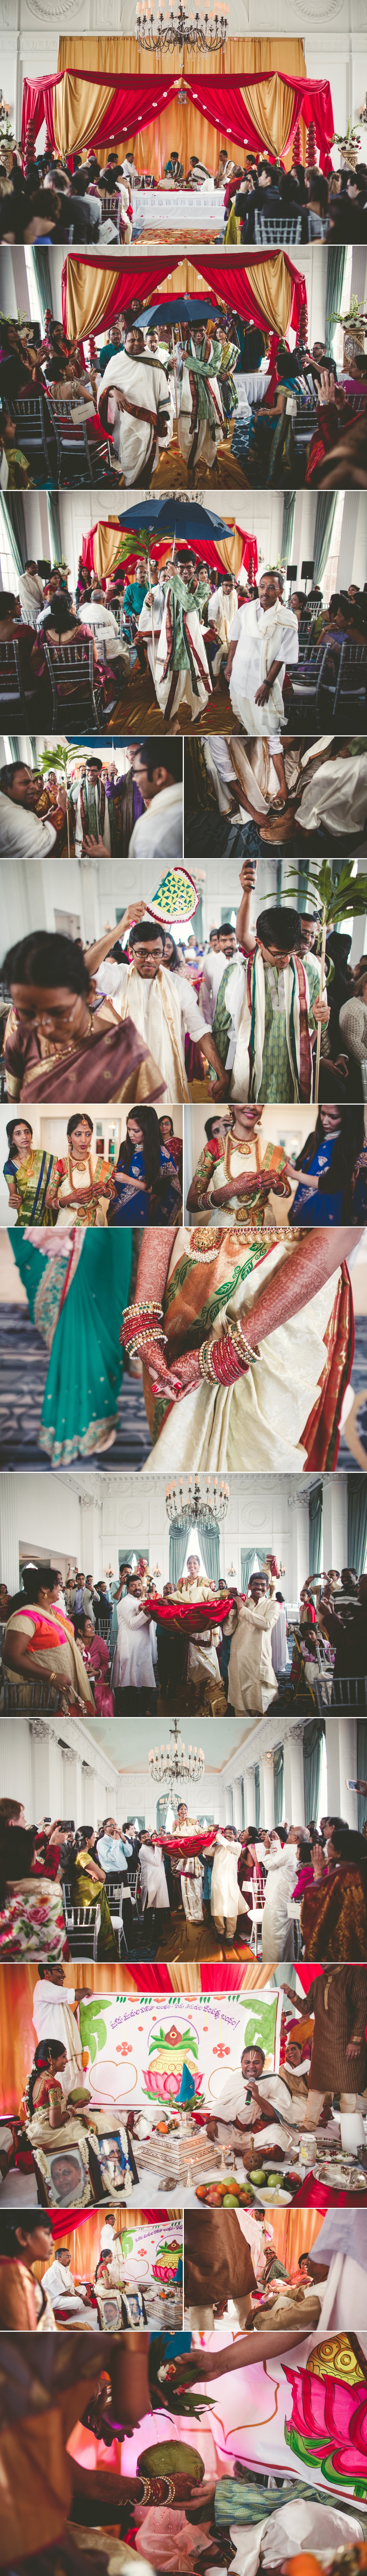 jason_domingues_photography_best_photographer_indian_wedding_st_louis_kansas_city_marriott_grand_4.jpg